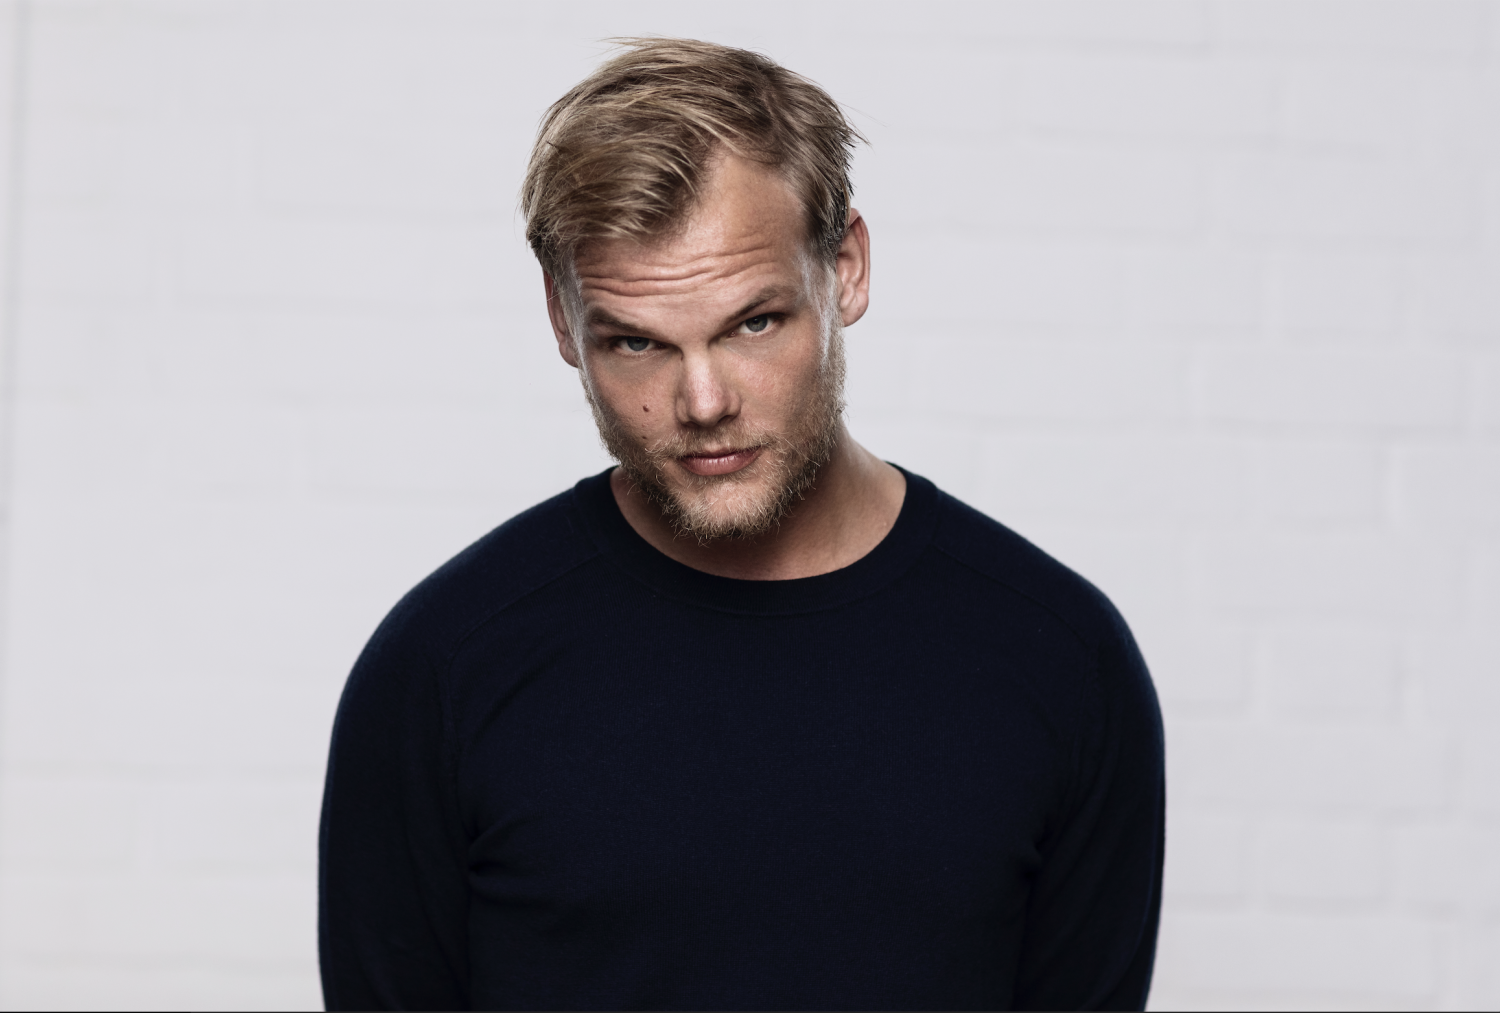 Avicii - Avici EP Friend Of Mine Without You